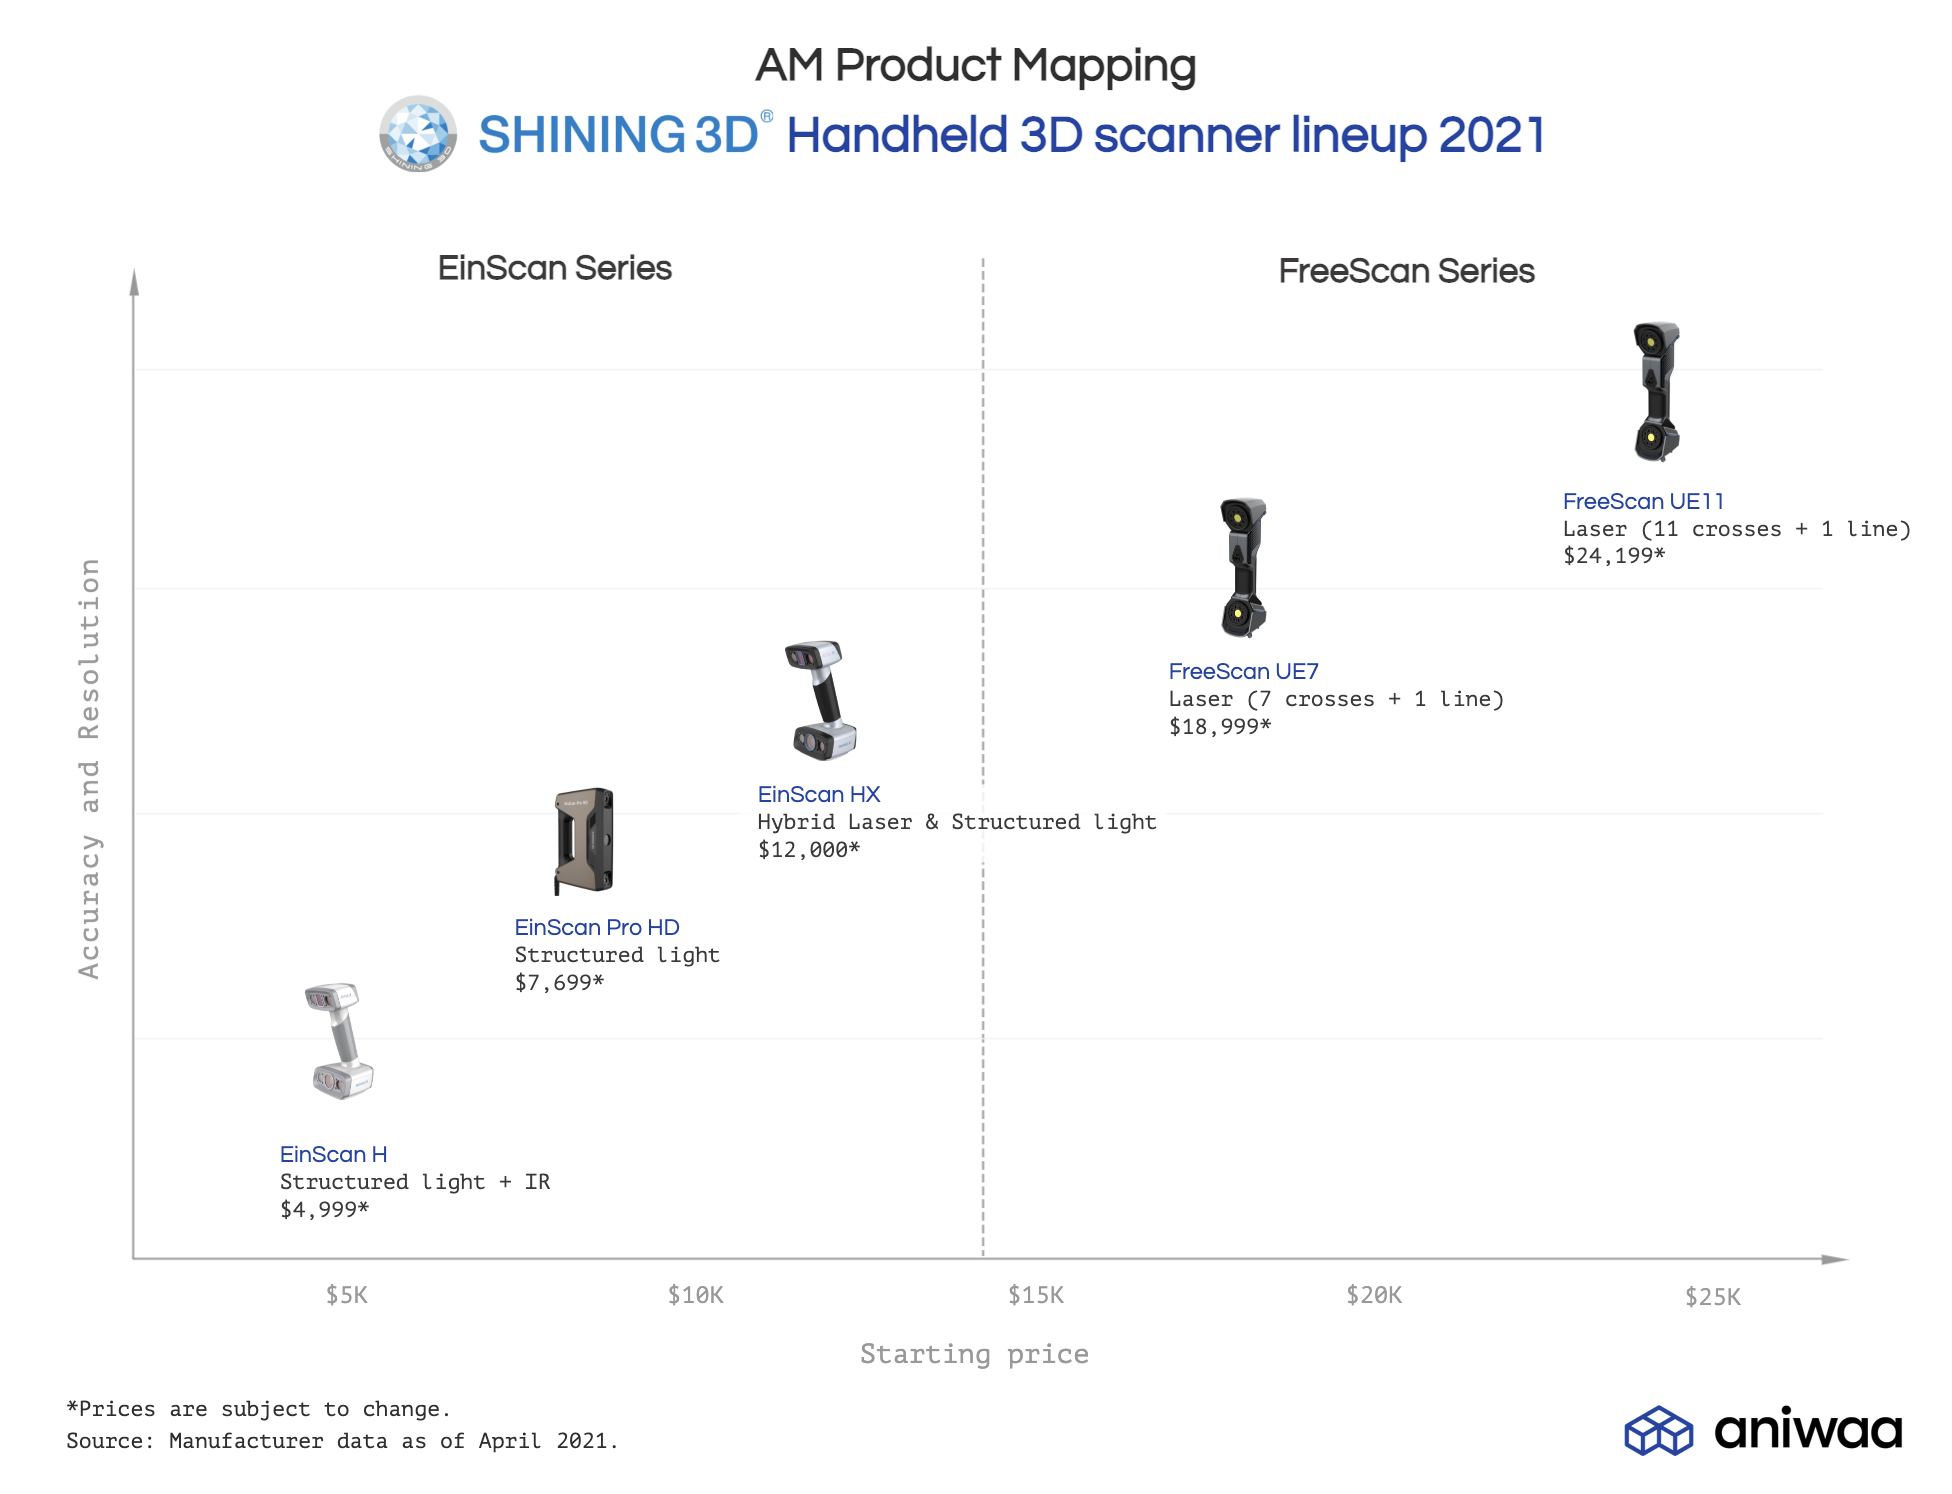 Shining 3D launches brand new EinScan H and HX models